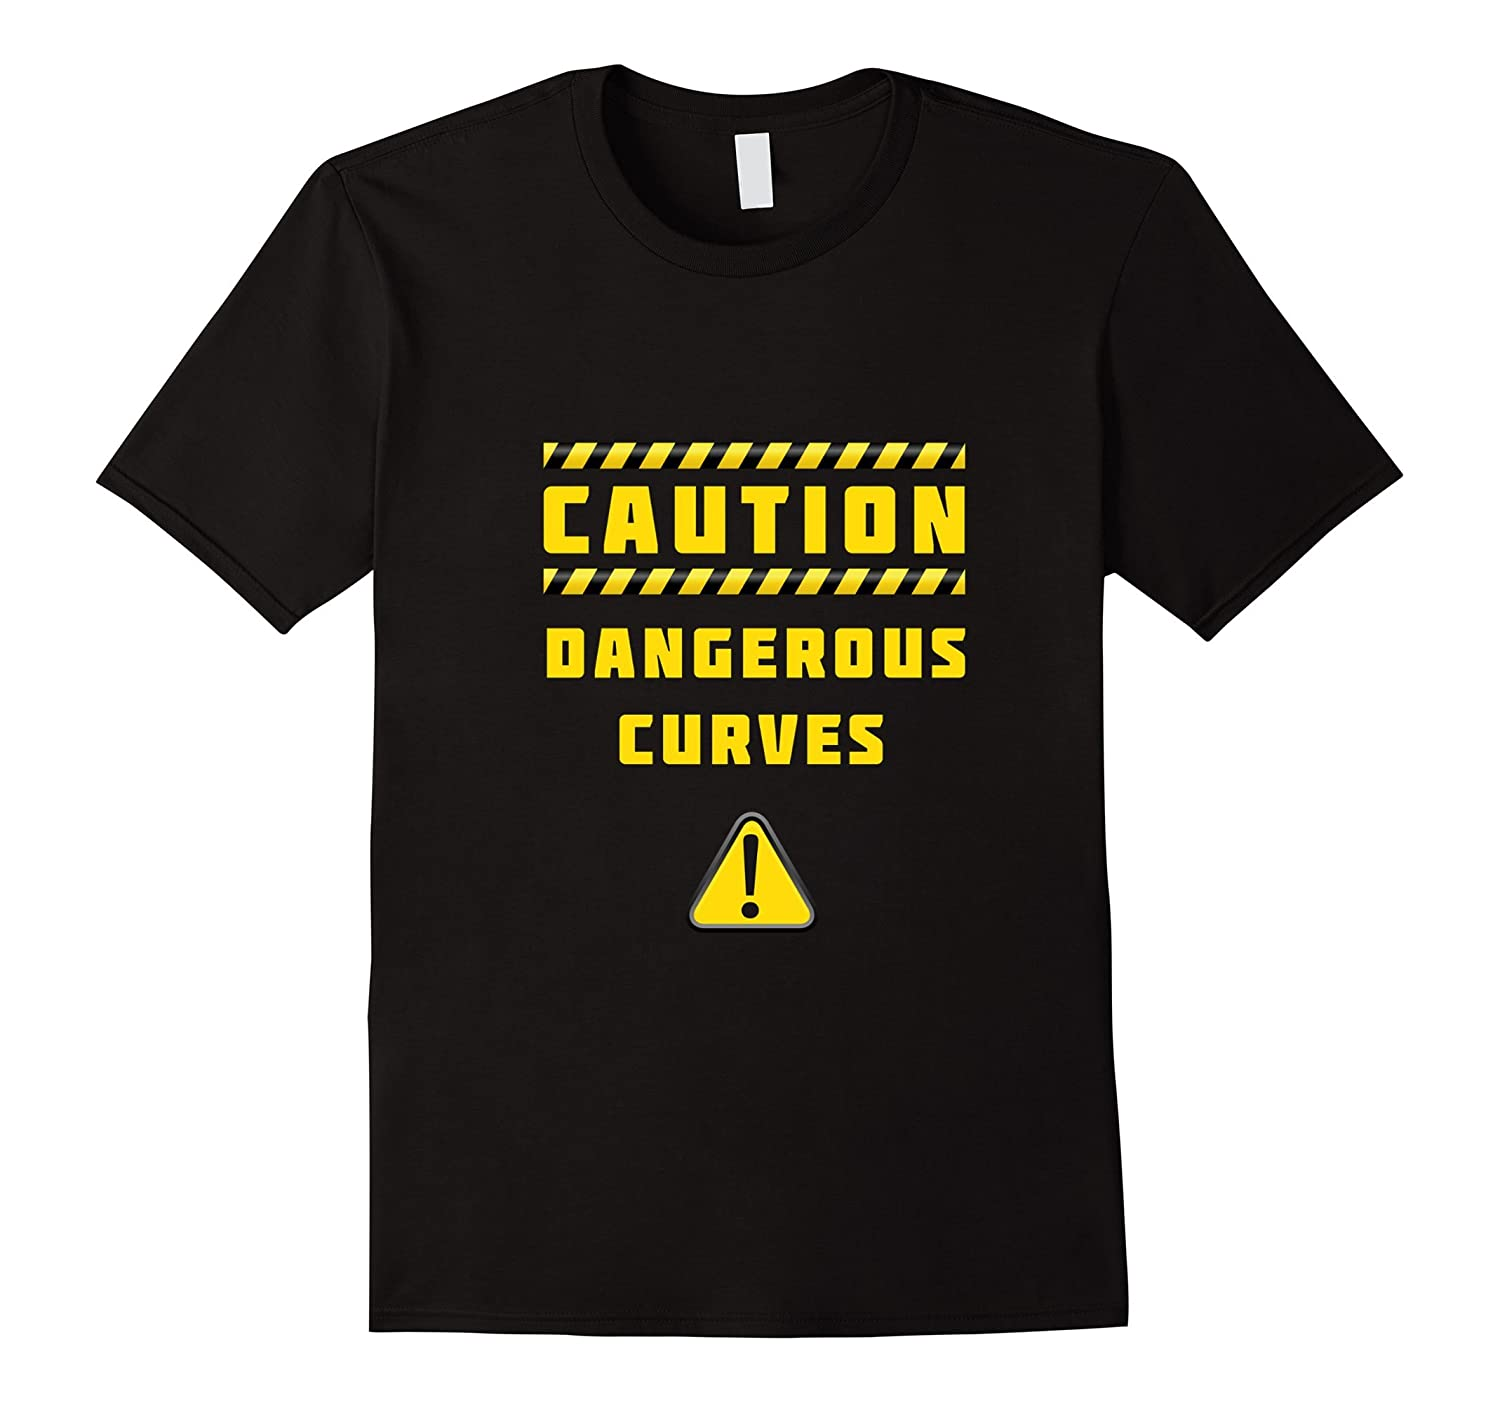 caution dangerous curves humor ironic T shirt big size model-BN